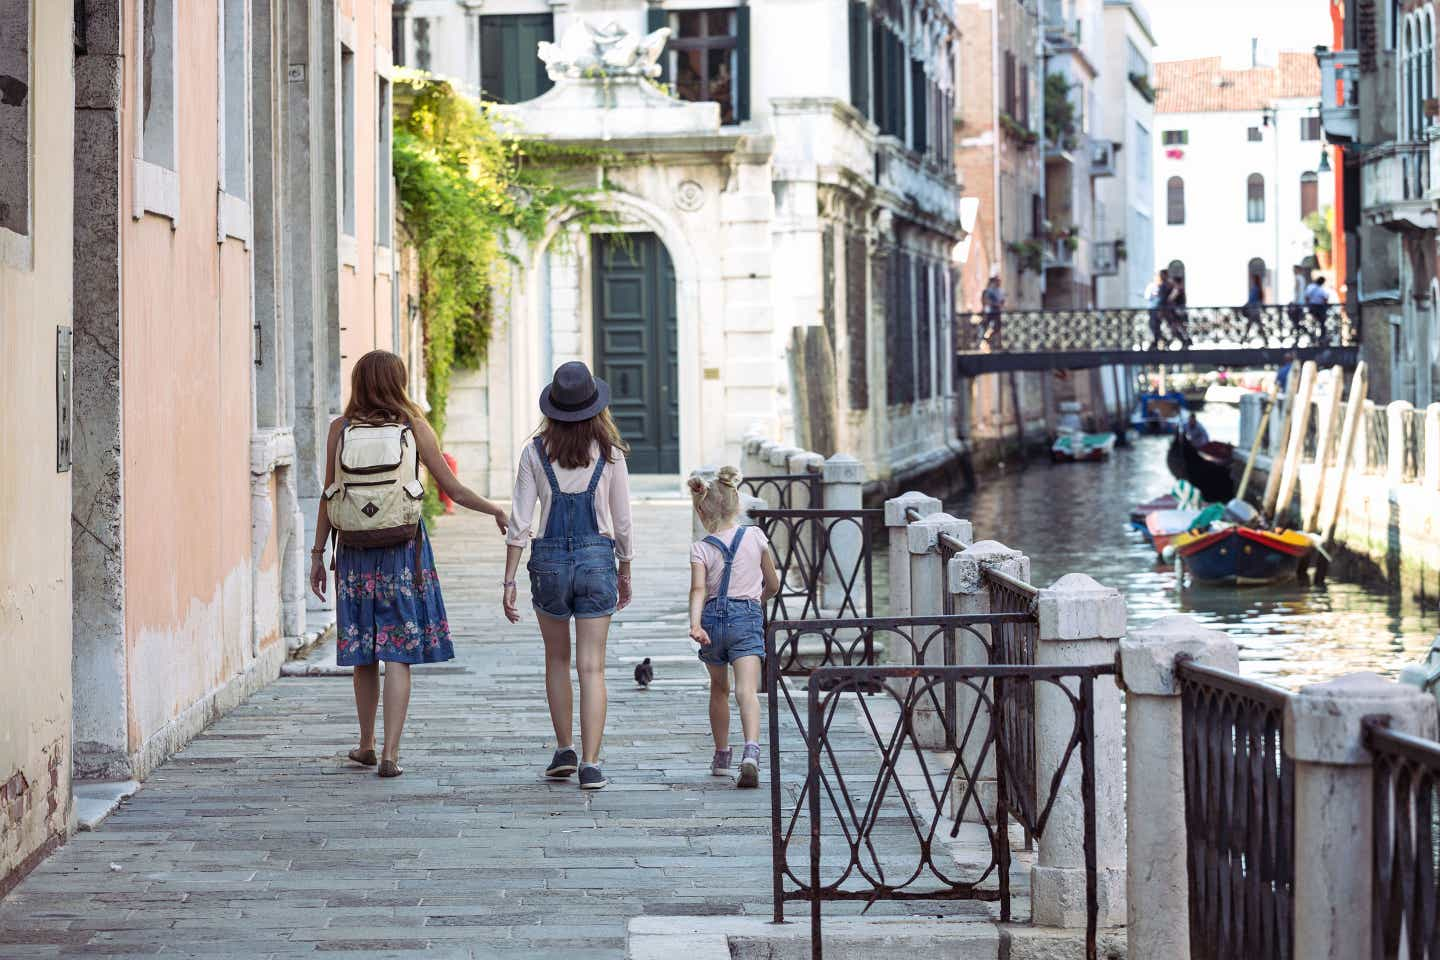 A woman (left) and her two daughters (middle and far-right) walk along the riverwalk of Venice, Italy.